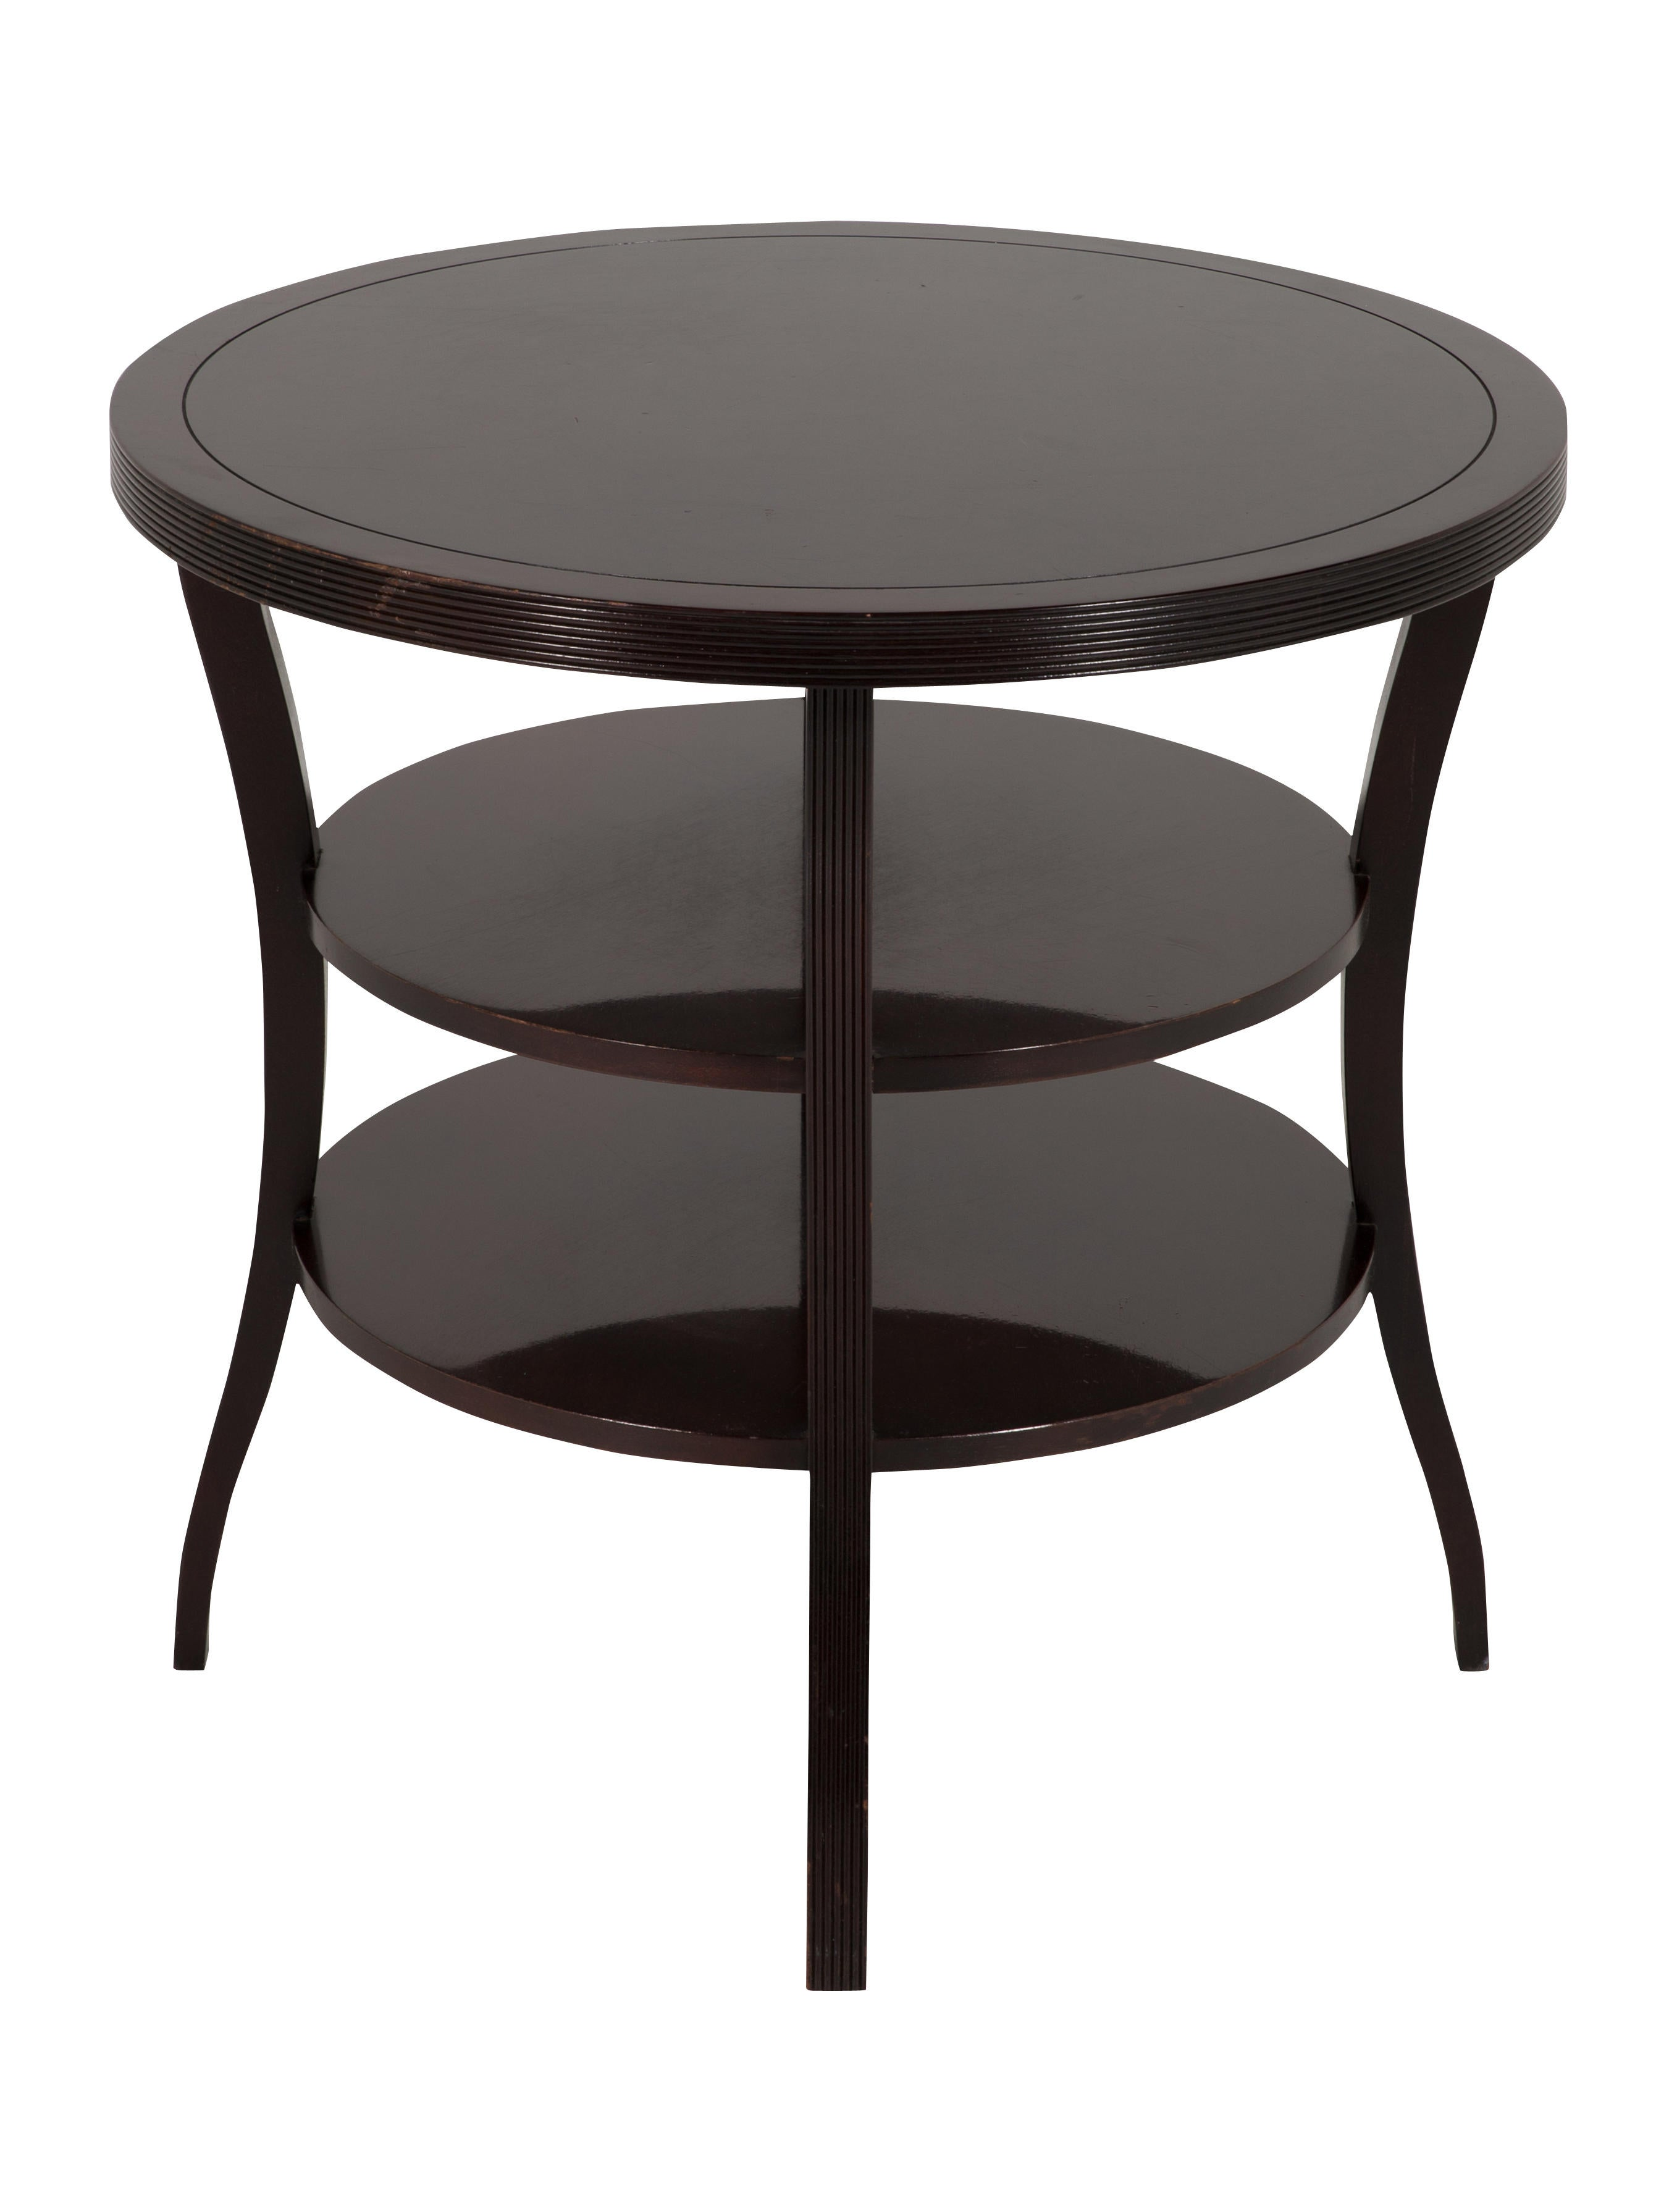 Baker Barbara Barry Mahogany Round Tiered End Table Furniture